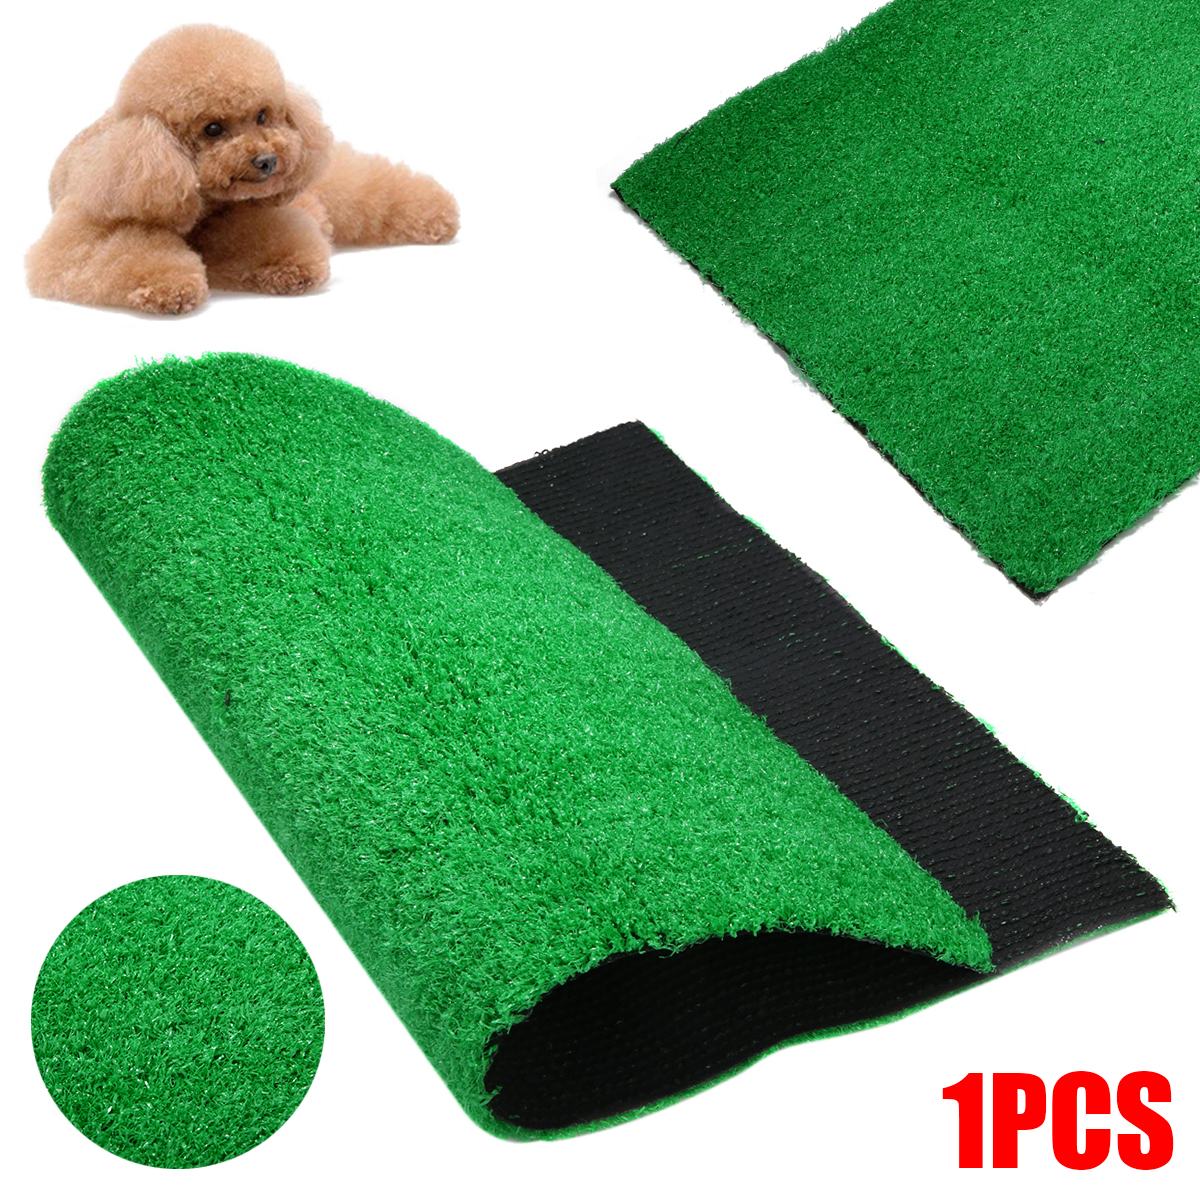 Toilet Dog Grass Pad Pee Mat Patch Simulation Training Green Artificial Turf Pet Puppy Potty Trainer Indoor Training